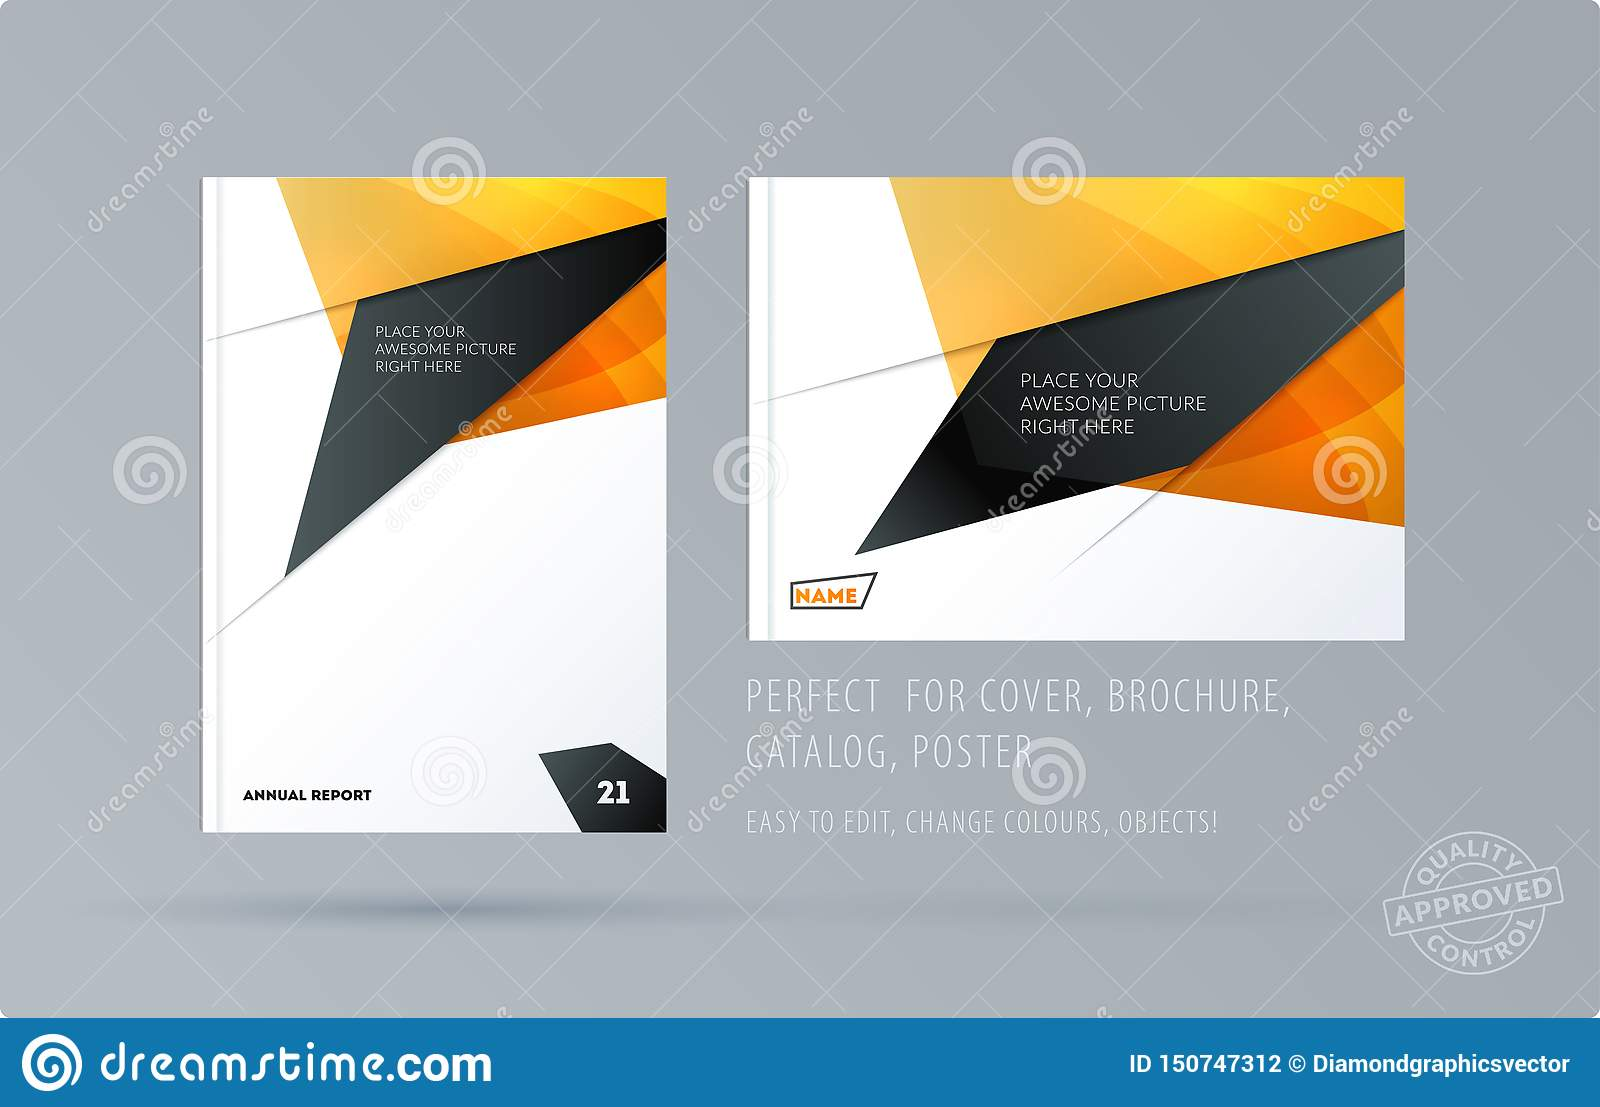 Abstract design brochure cover, creative flyer in A4 with colourful shapes for branding, marketing kit